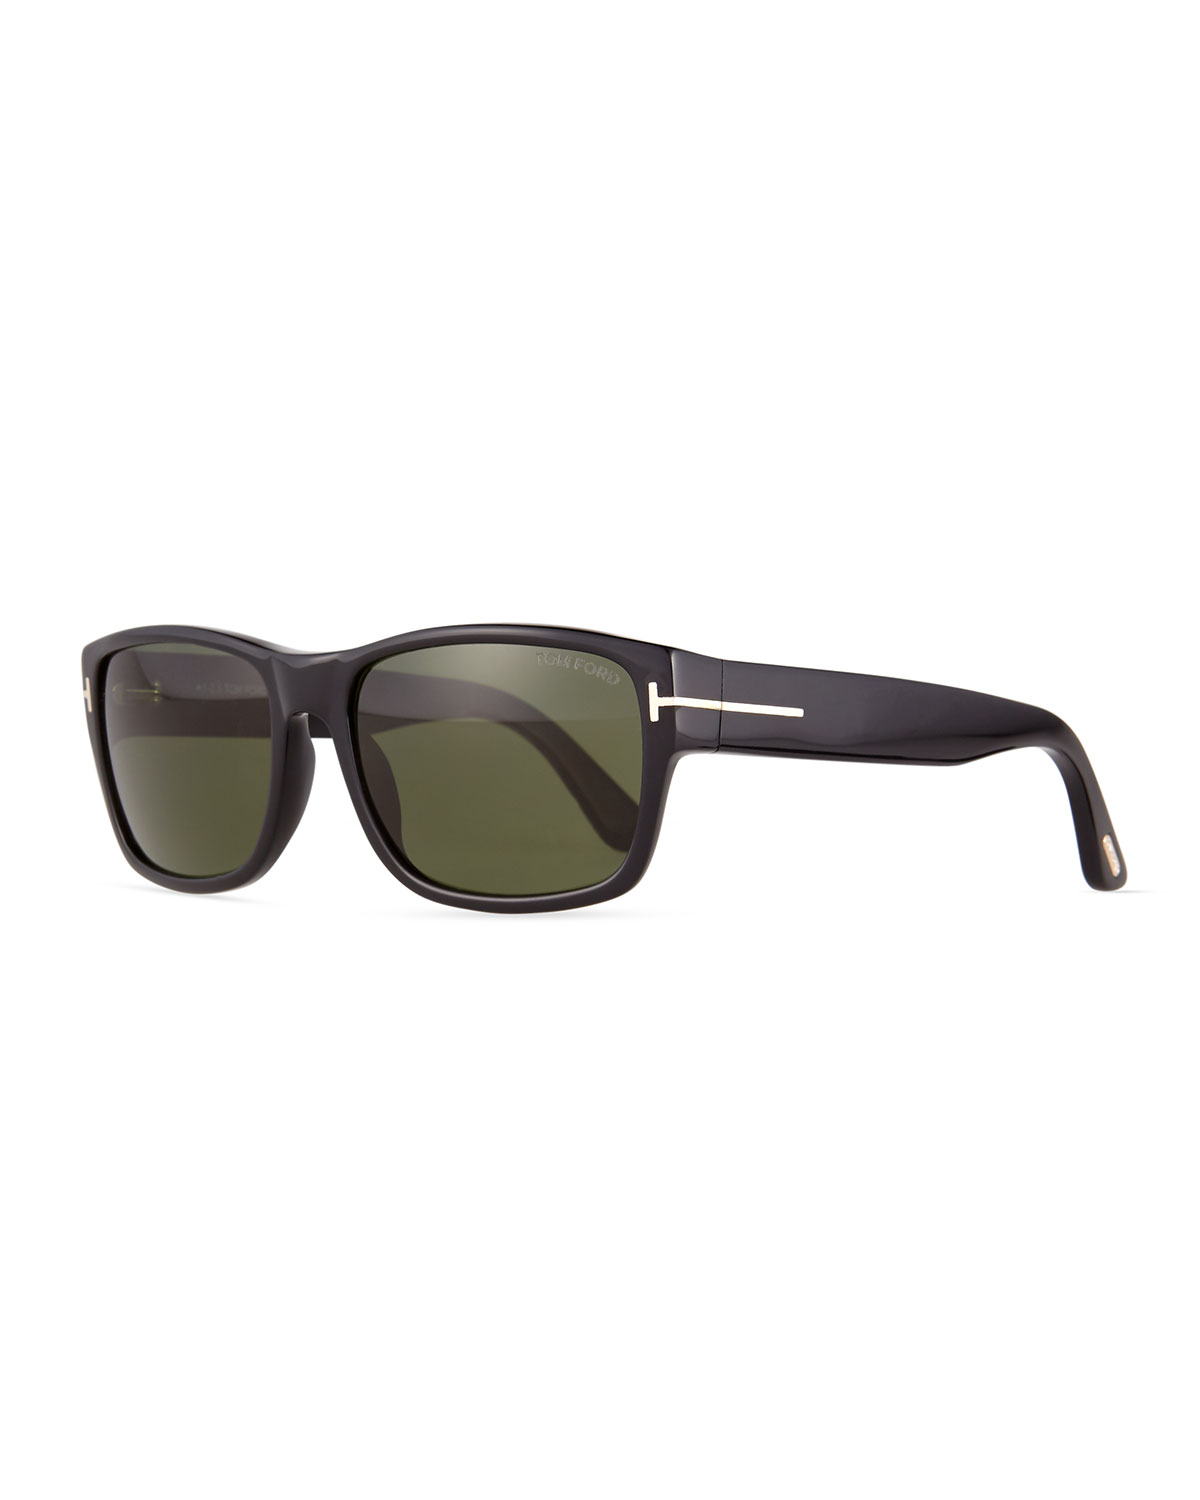 d611d89840e Tom Ford Black Sunglasses